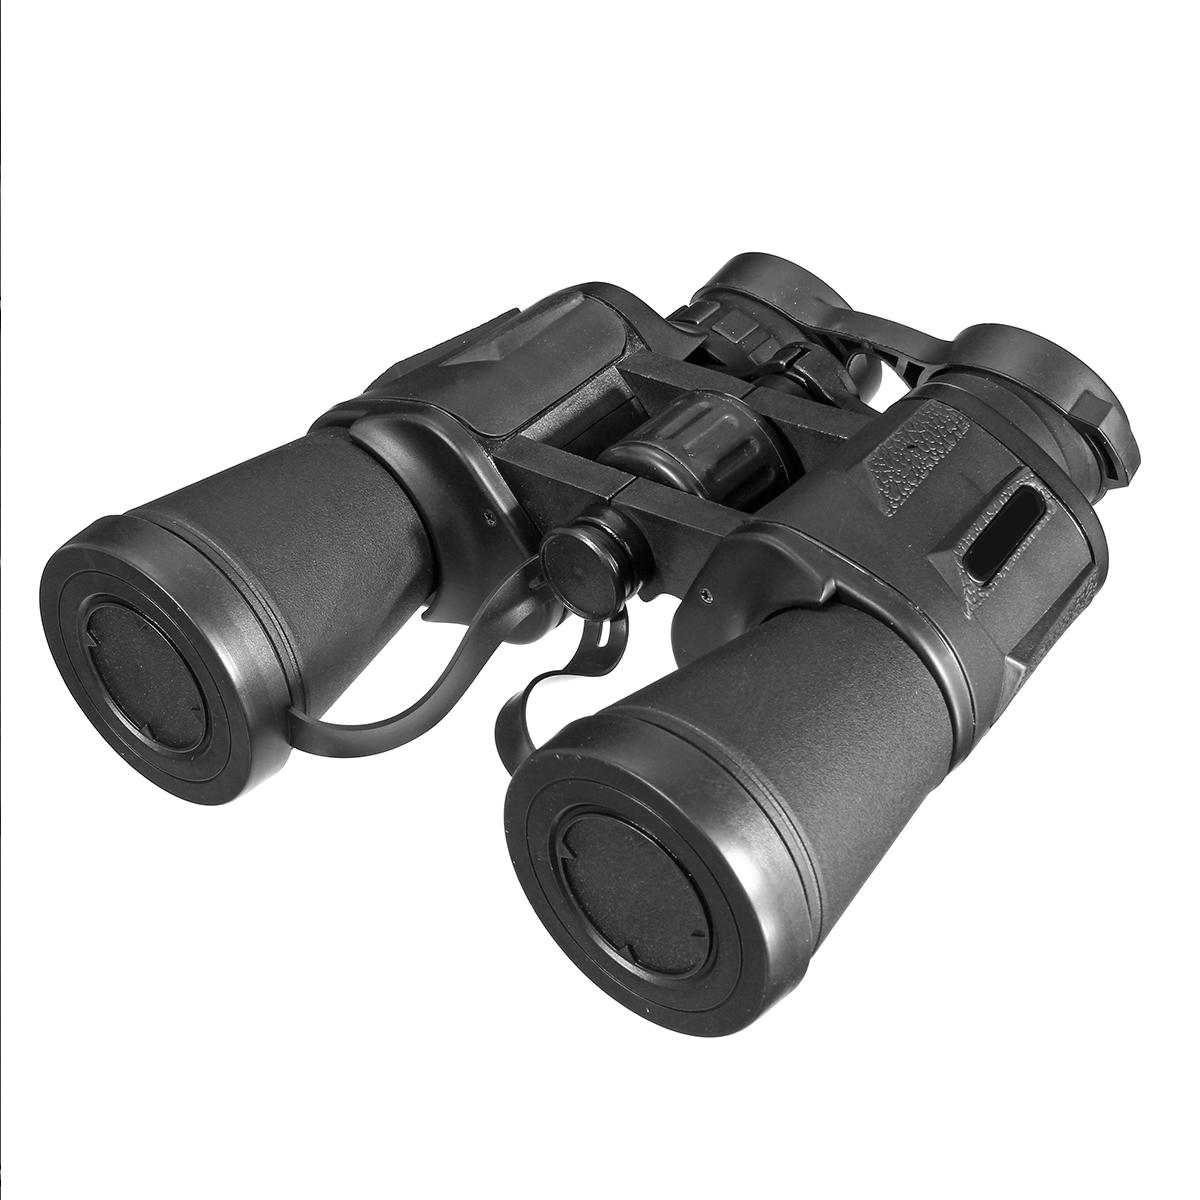 20X50 HD BAK4 Bipods Binoculars Portable Night Vision Telescope For Outdoor Hunting Optics - 1